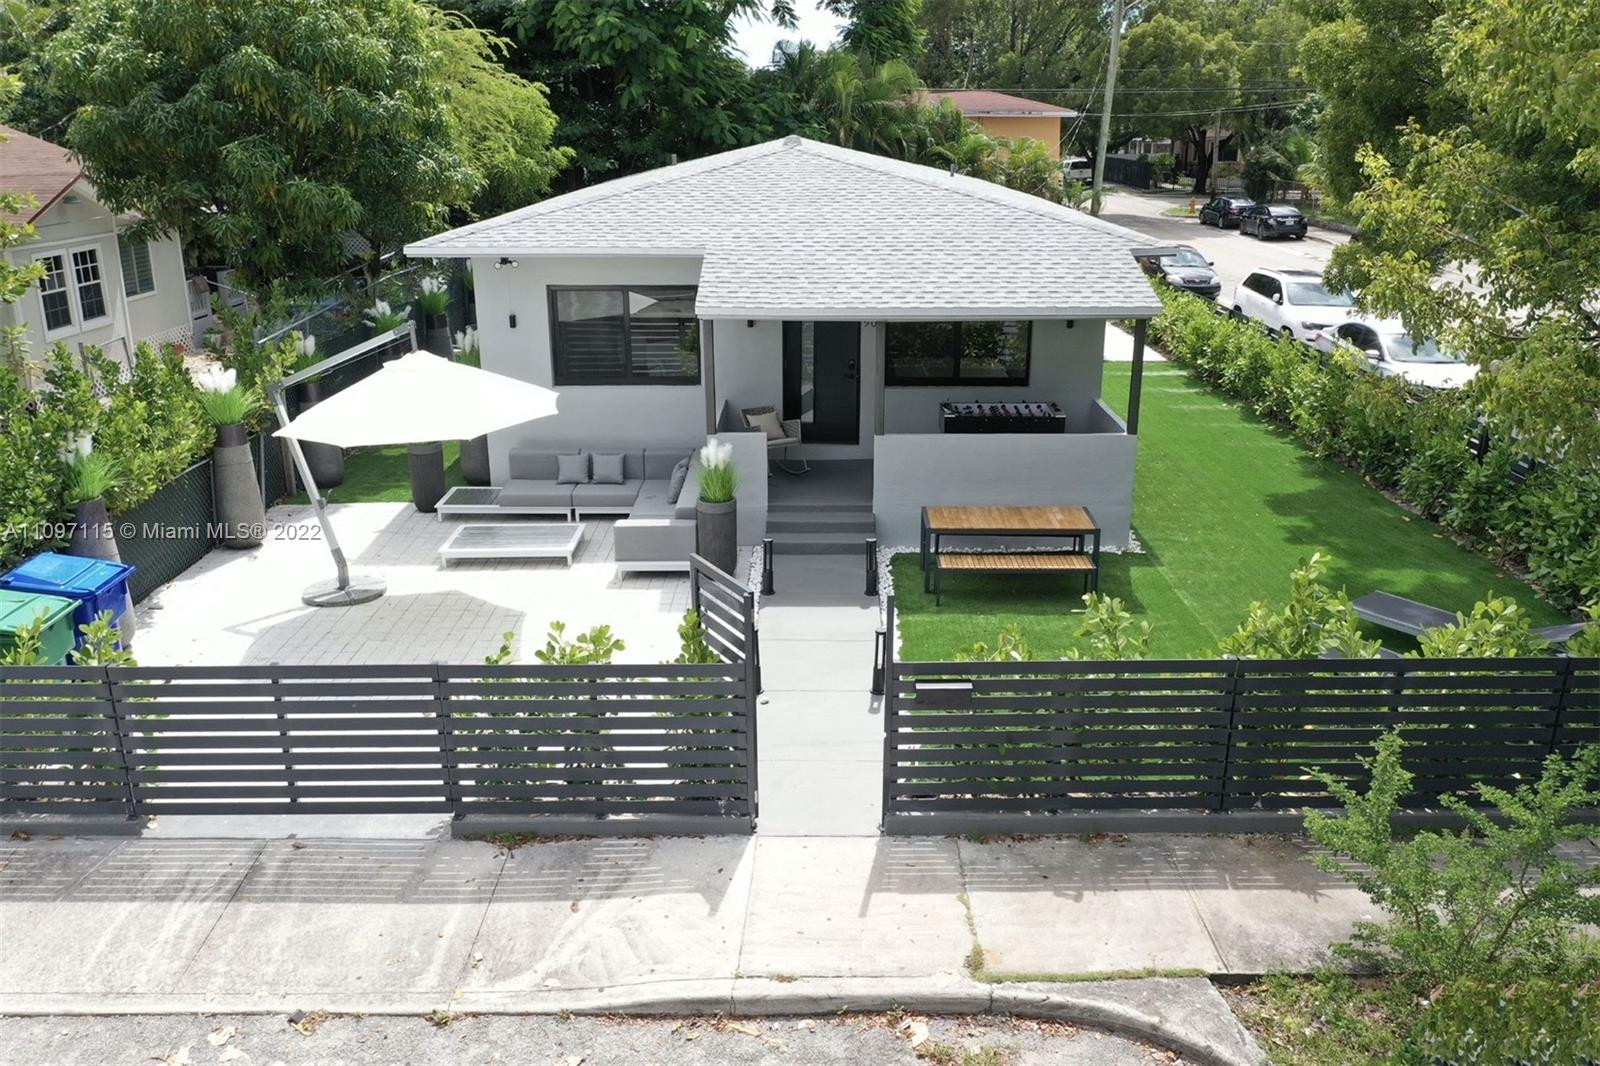 Single Family Home,For Sale,90 NW 33rd St, Miami, Florida 33127,Brickell,realty,broker,condos near me